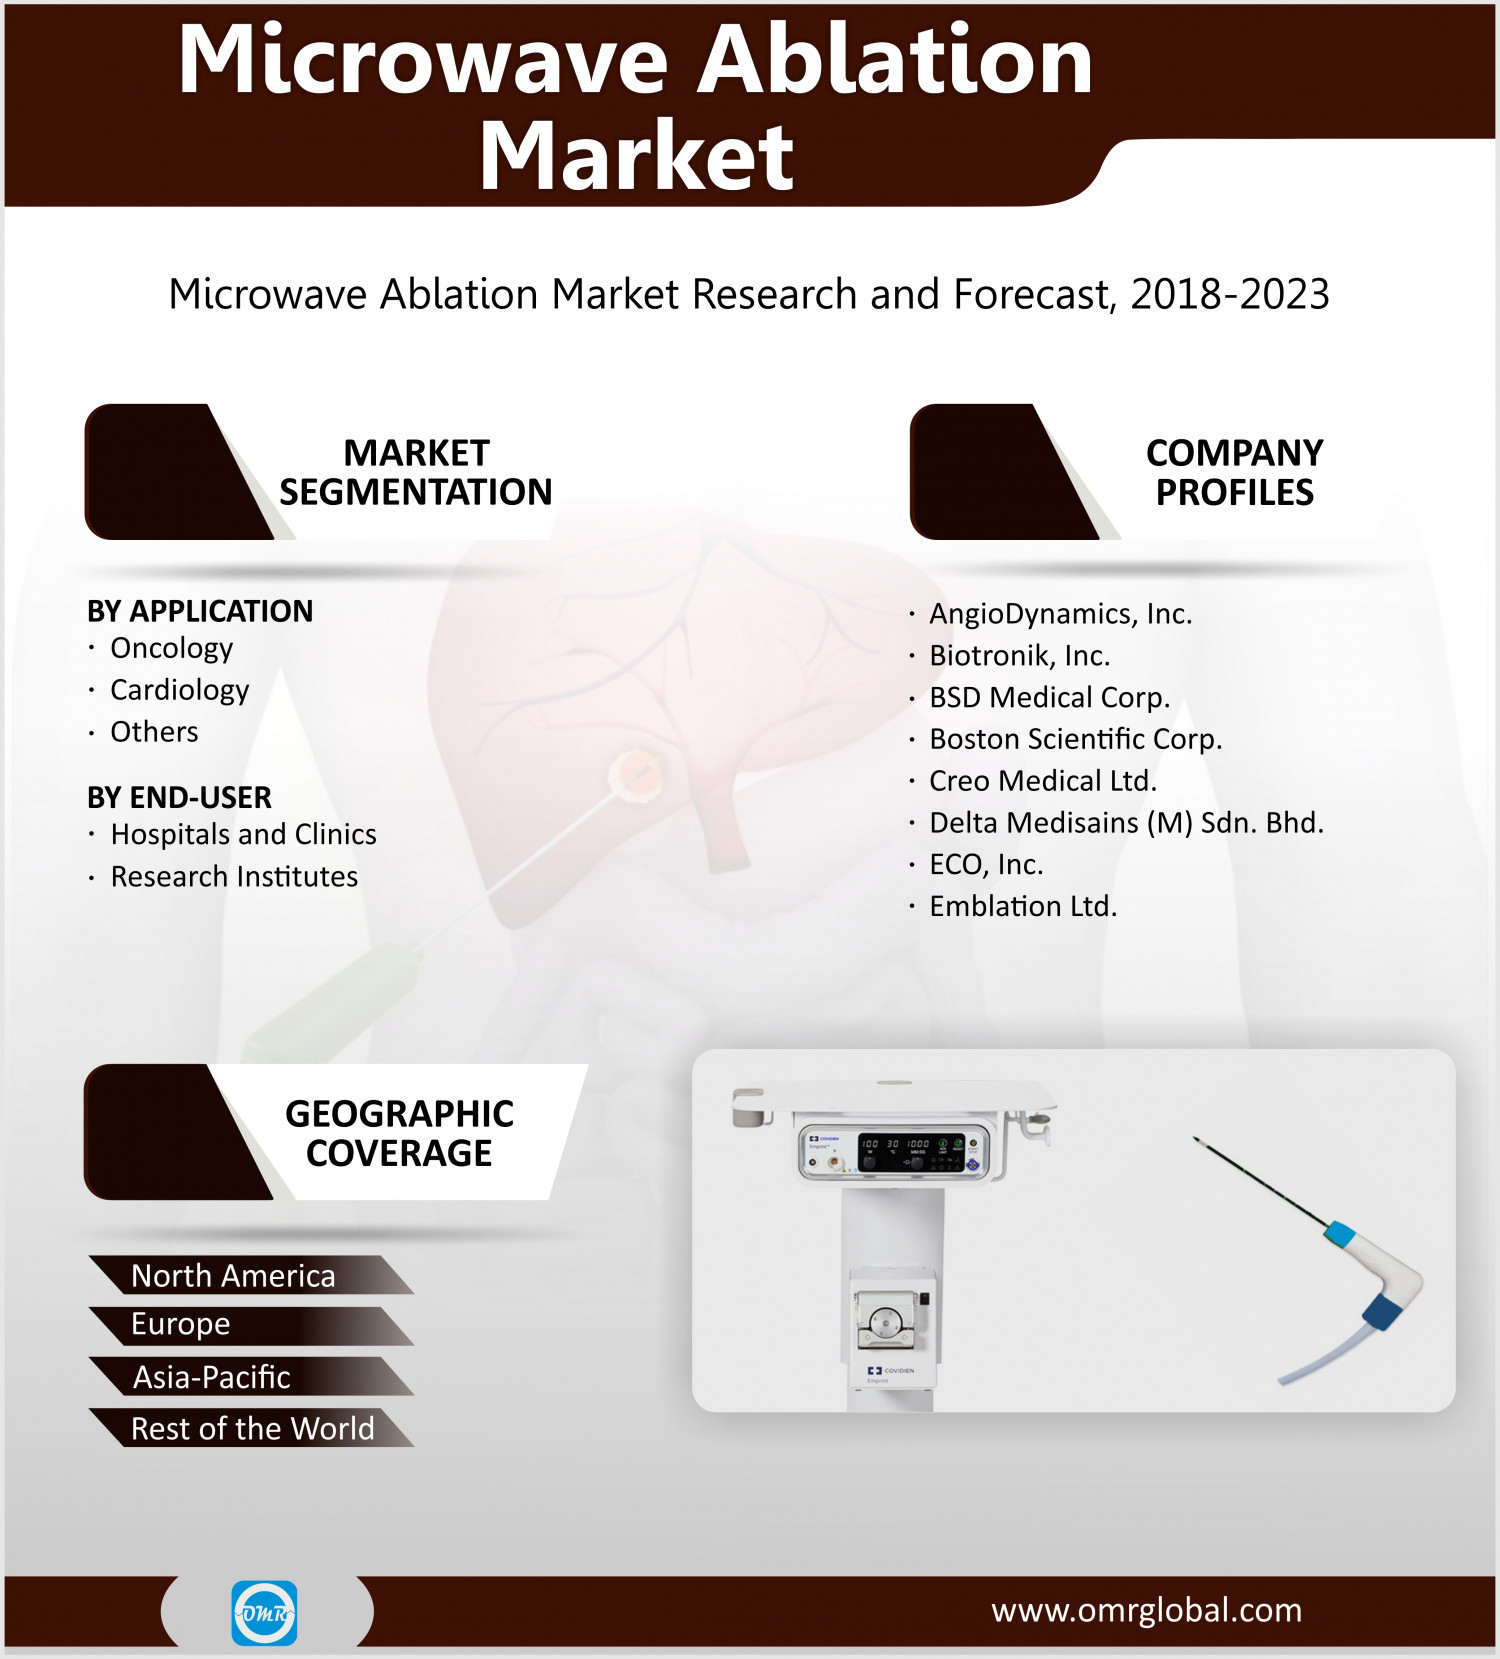 Microwave Ablation Market Research and Forecast 2018-2023 Infographic